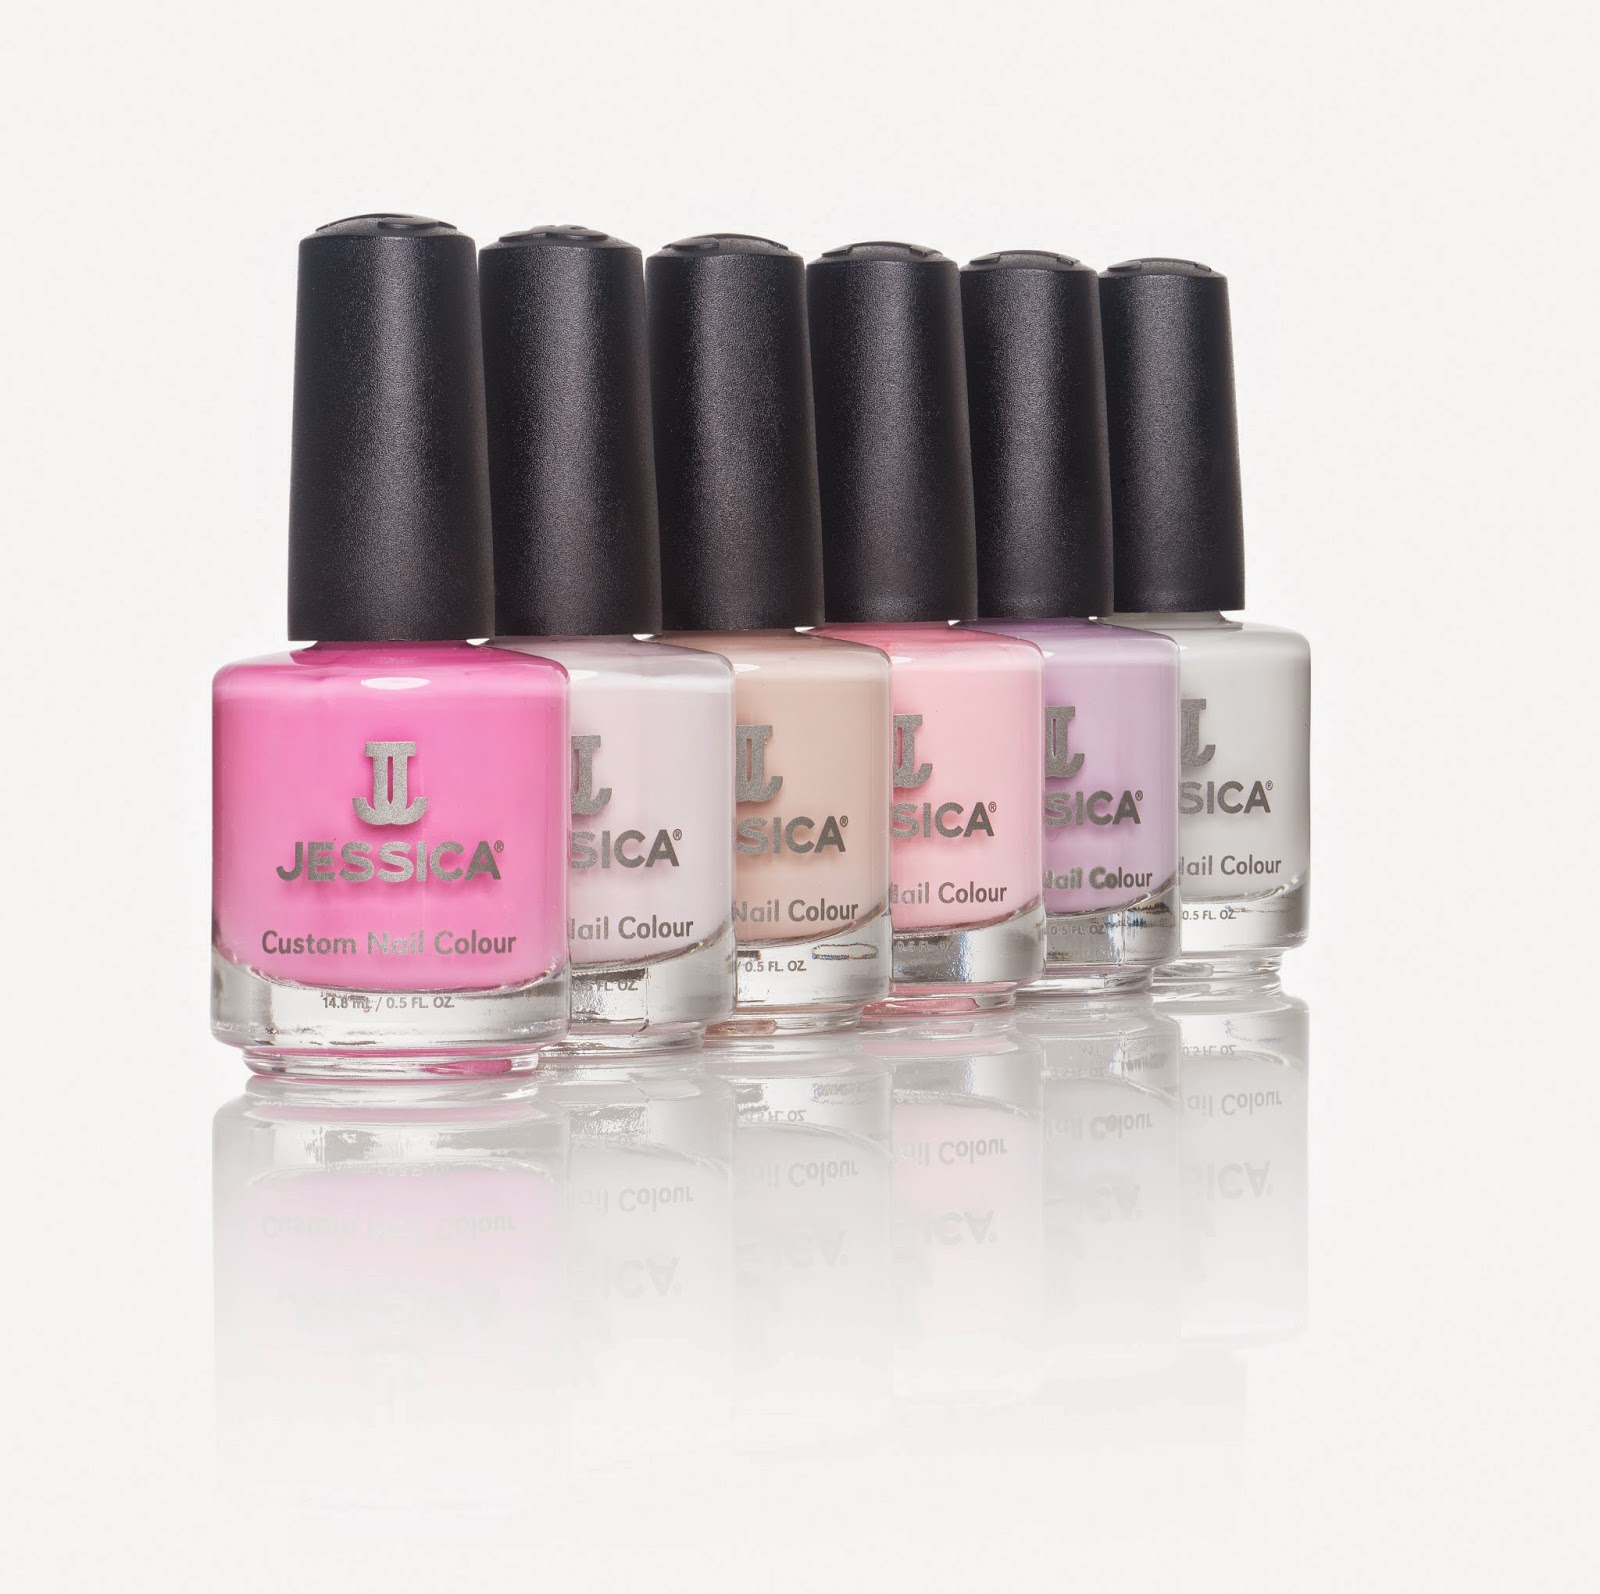 jessica spring nails whisper collection pixiwoo com